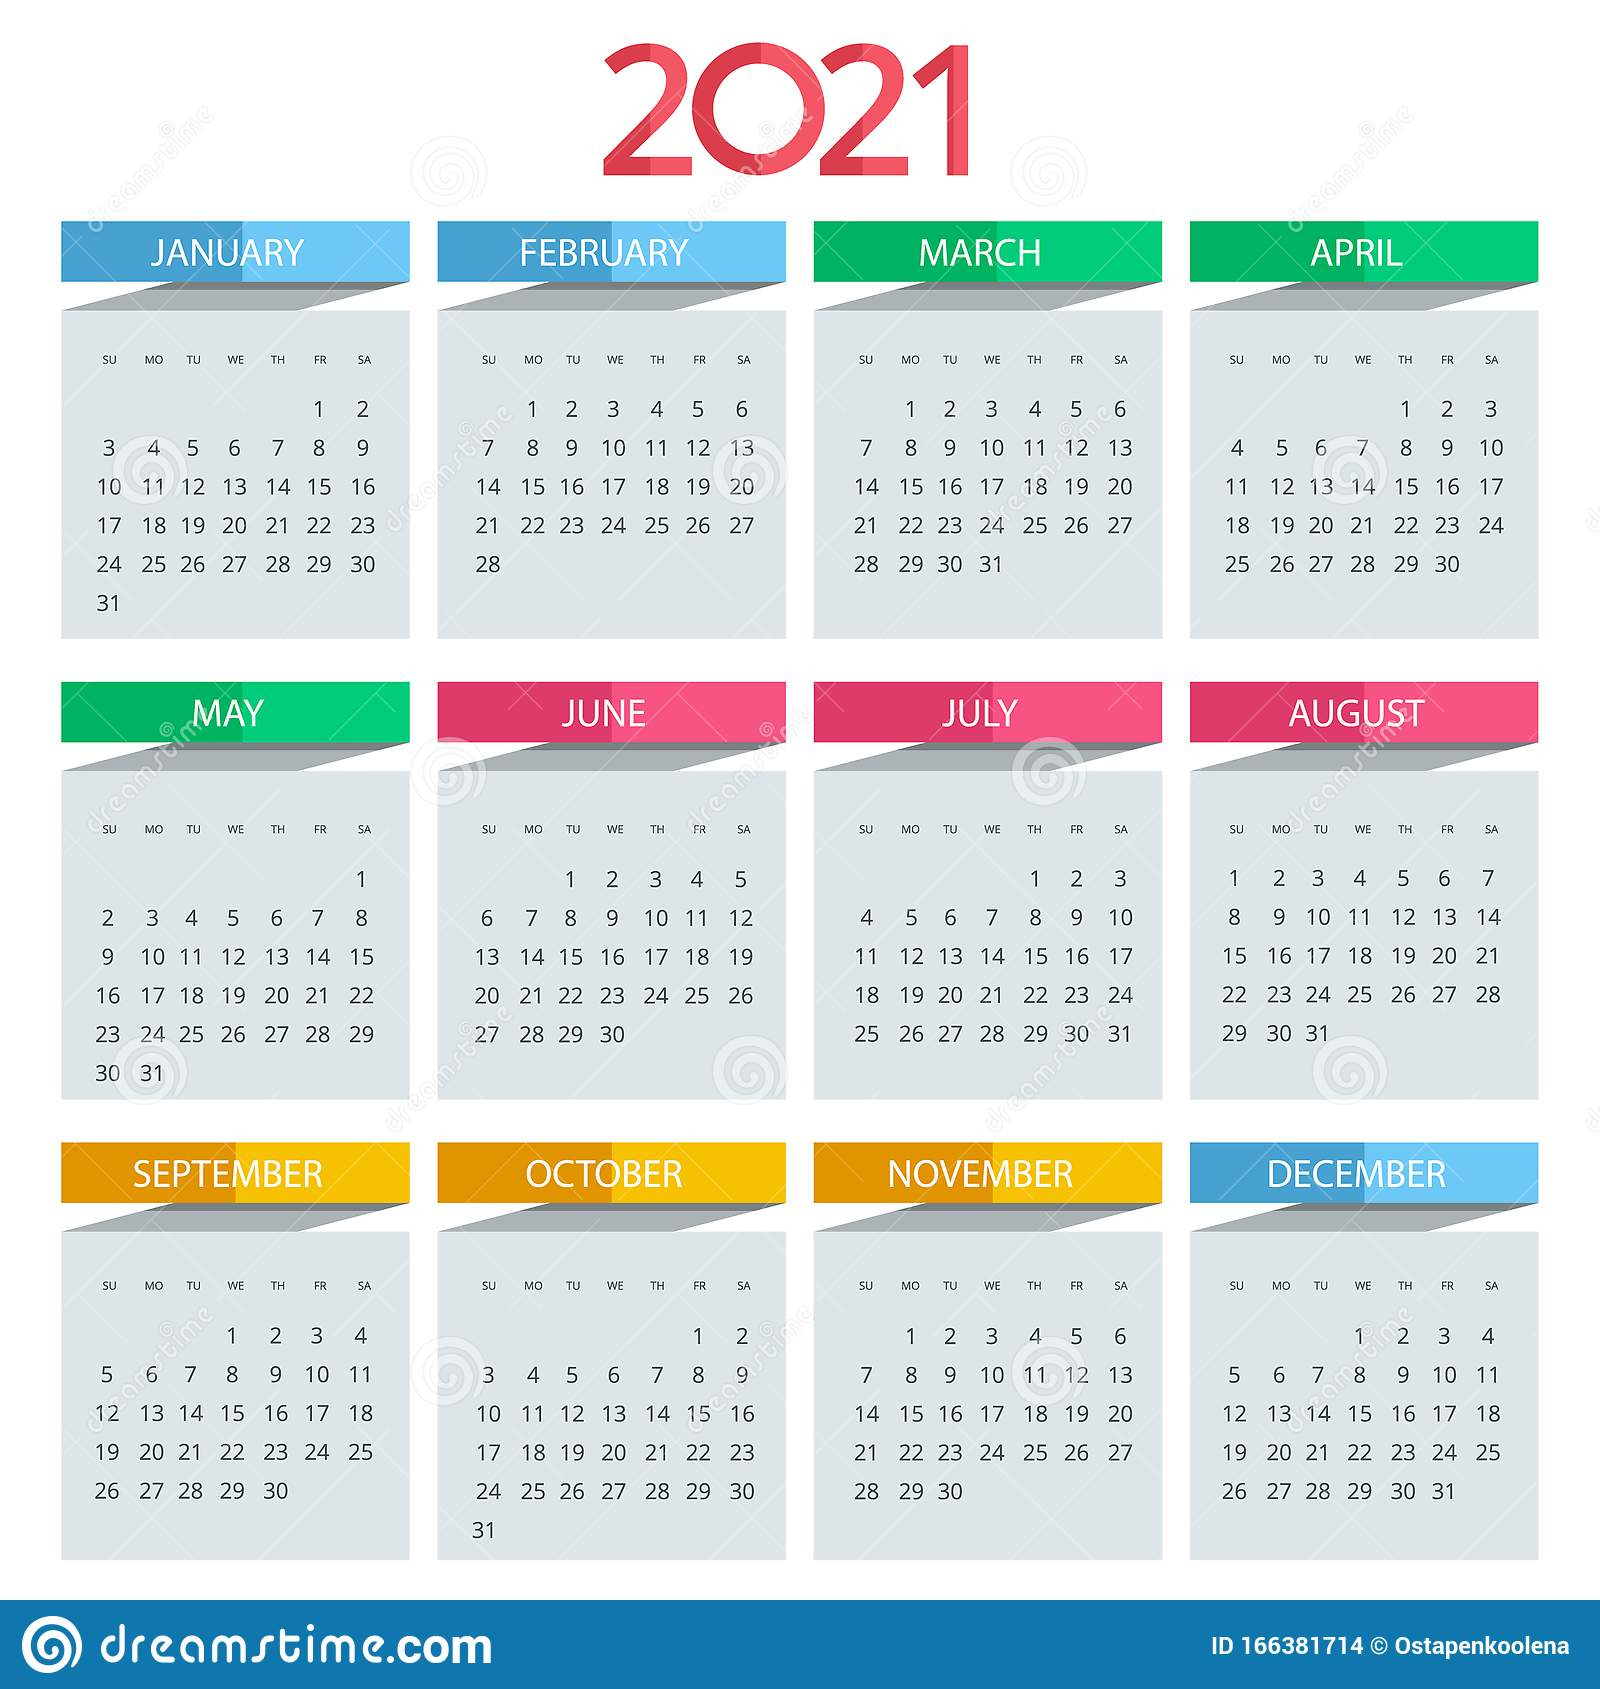 2021 Calendar, Print Template With Place For Photo, Your